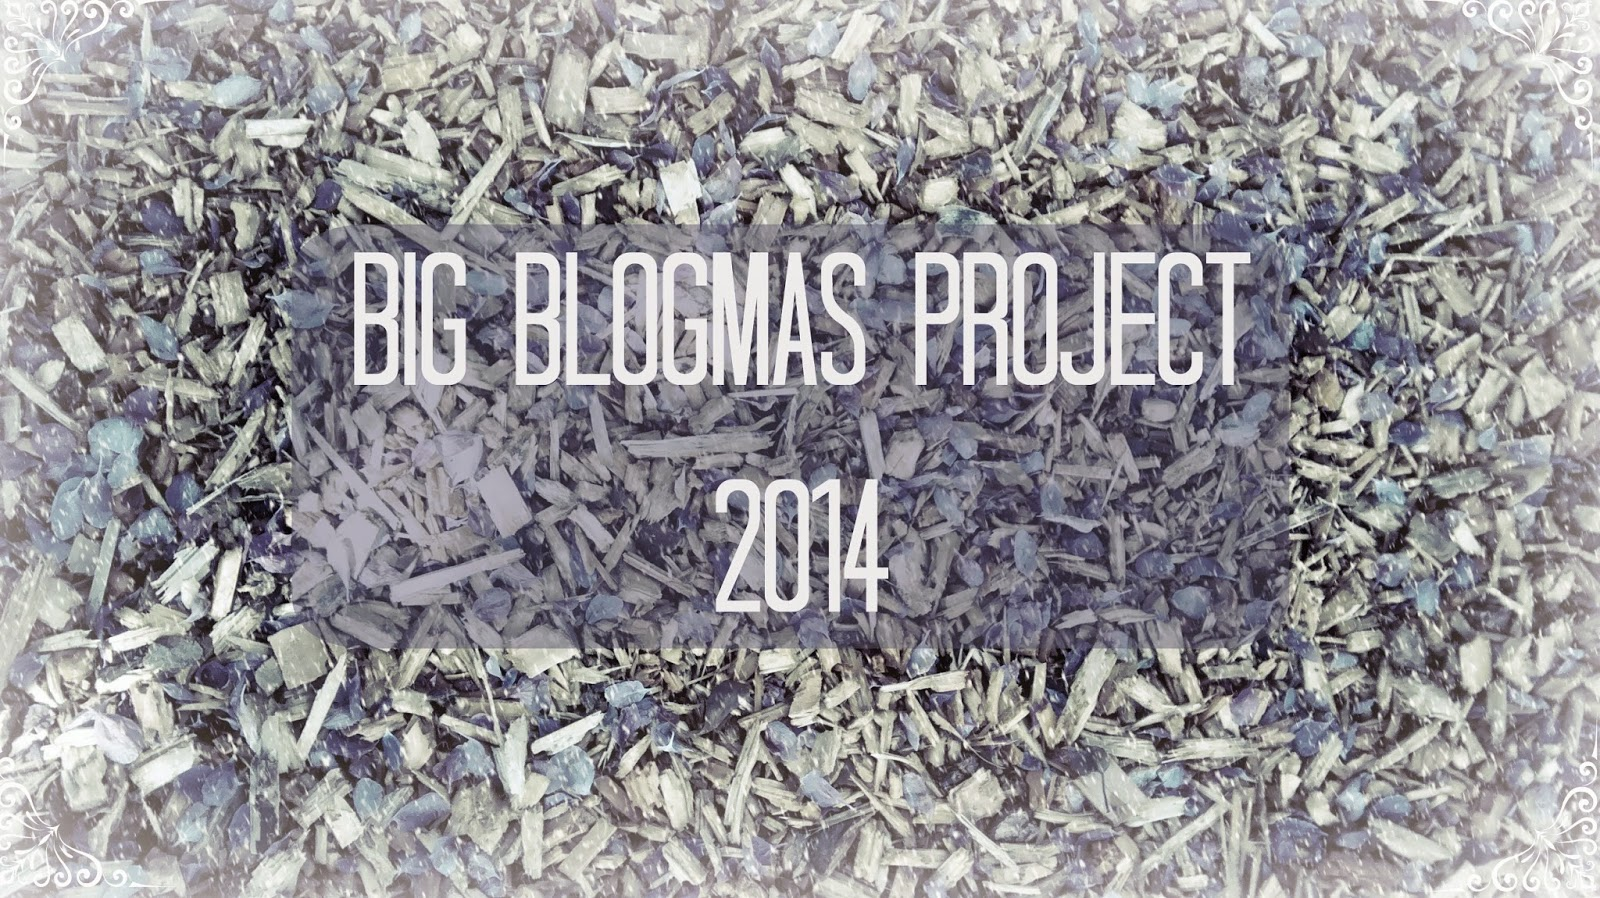 Big Blogmas Project